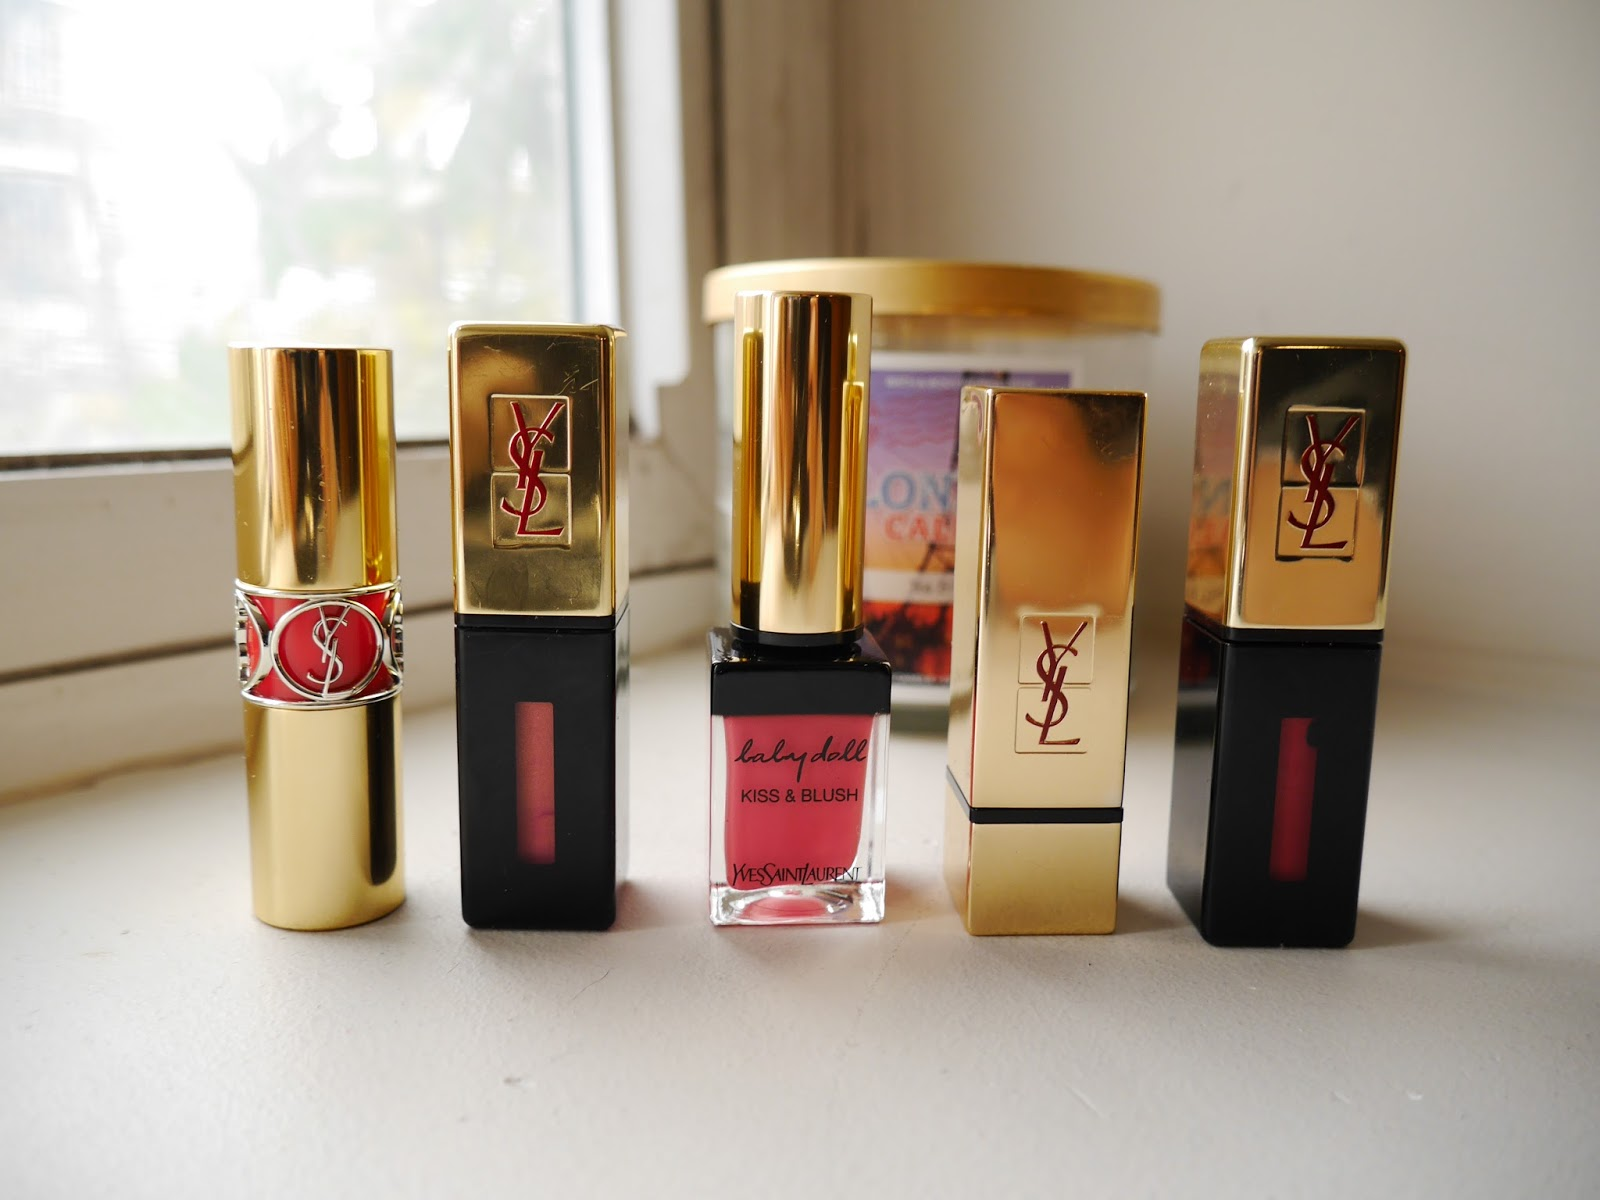 ysl glossy stin 13 109 rouge volumpte shine 12 kiss and blush 2 rouge pur couture 52 s